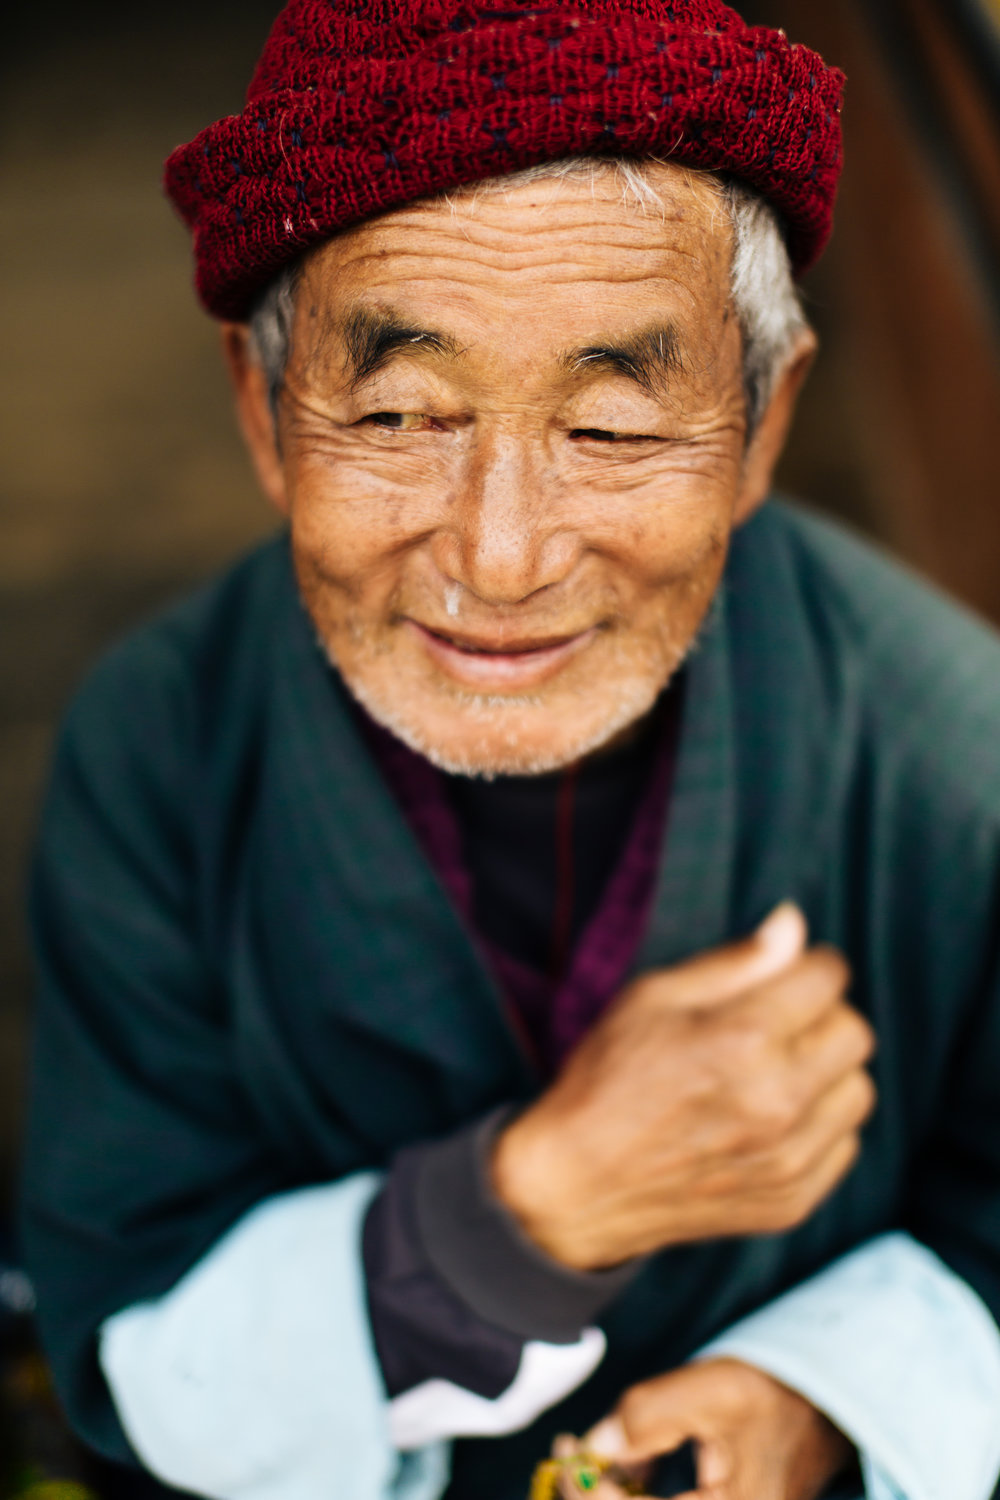 Gentle Bhutanese man